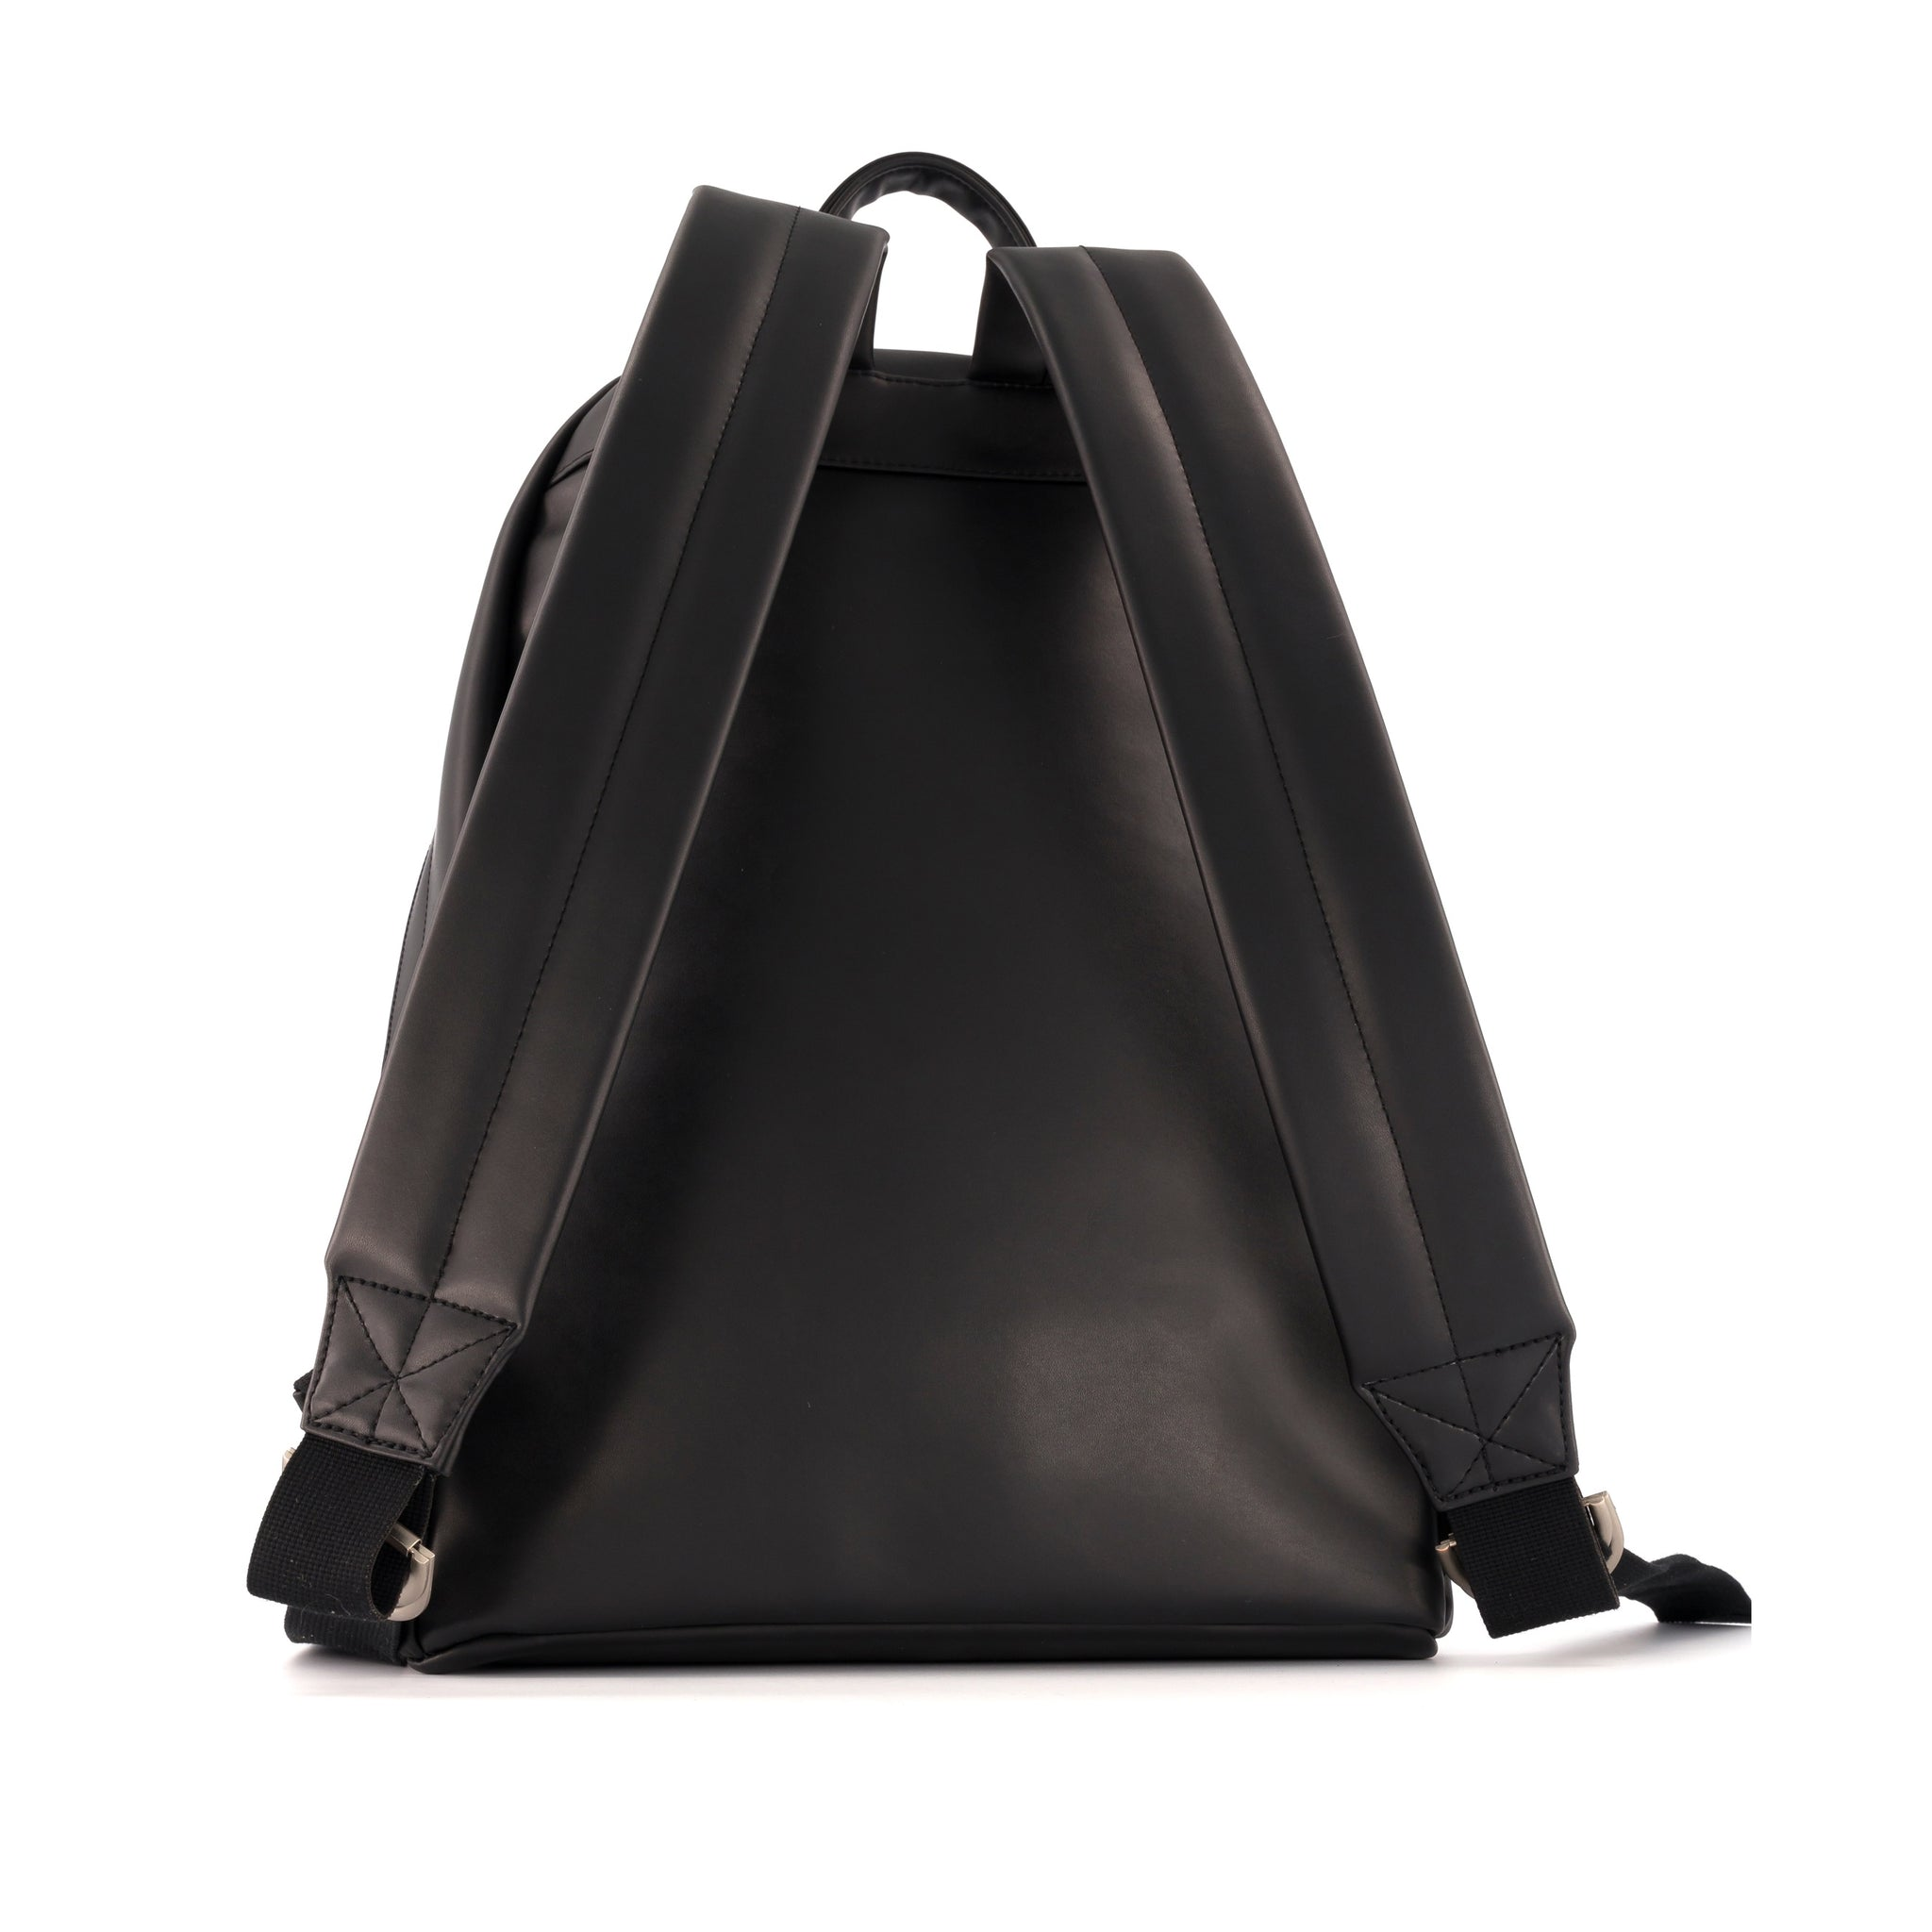 BOCCACCIO BACKPACK FUTURE LEATHER BLACK